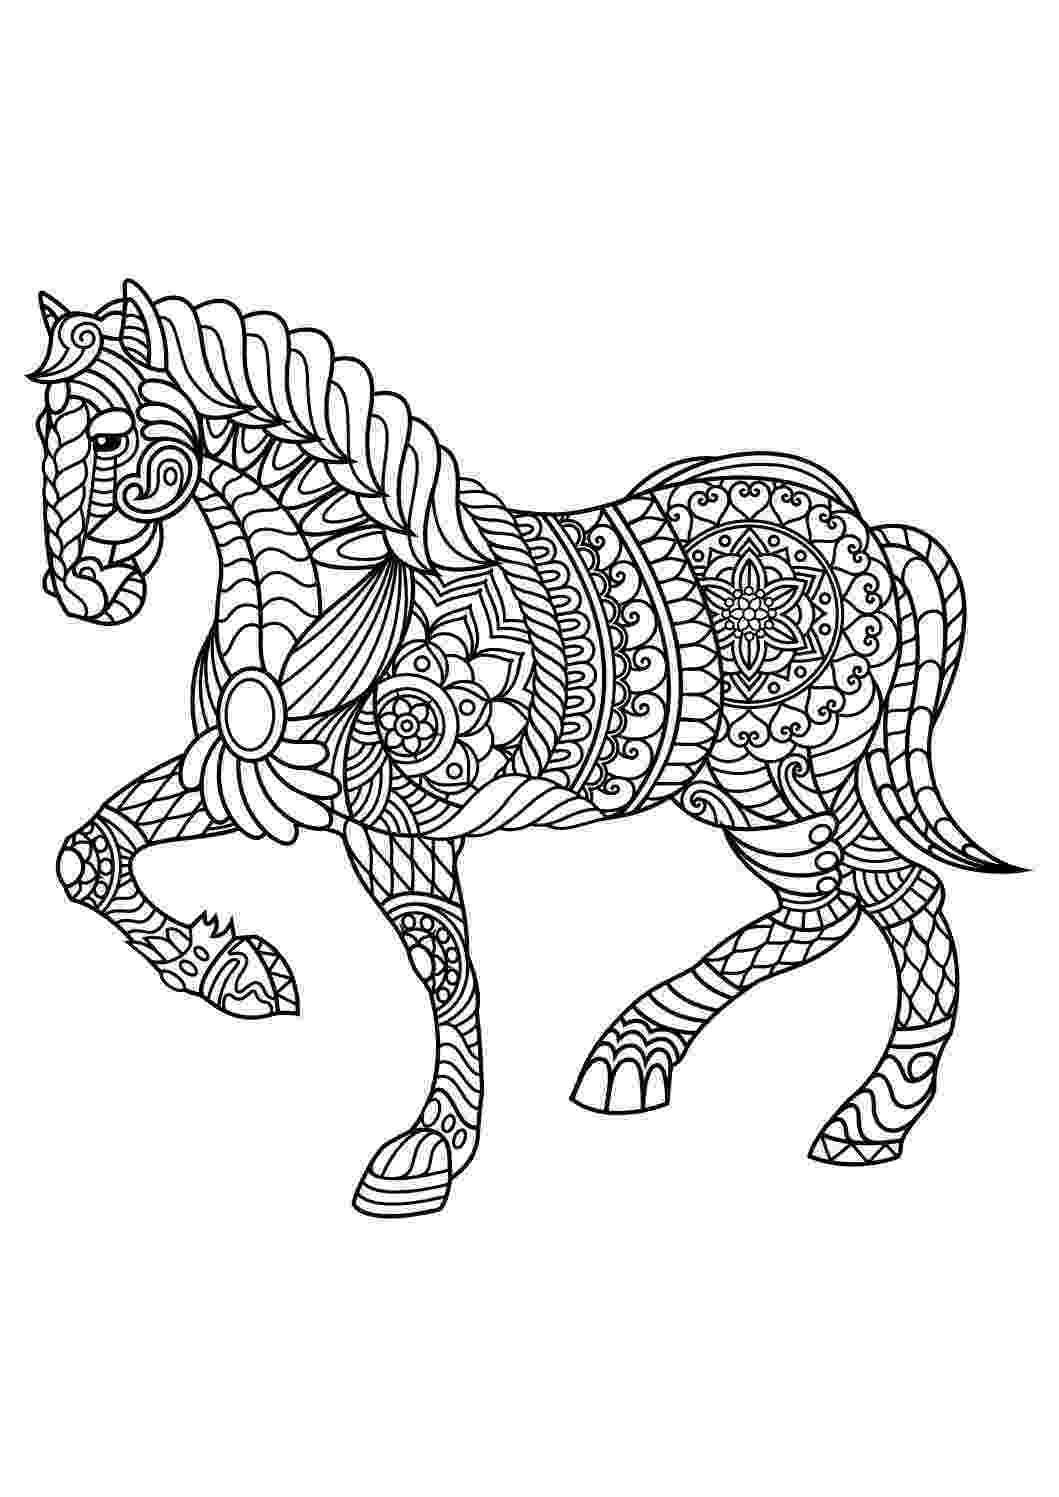 animal pictures coloring pages quirky artist loft 39cuties39 free animal coloring pages animal pictures pages coloring